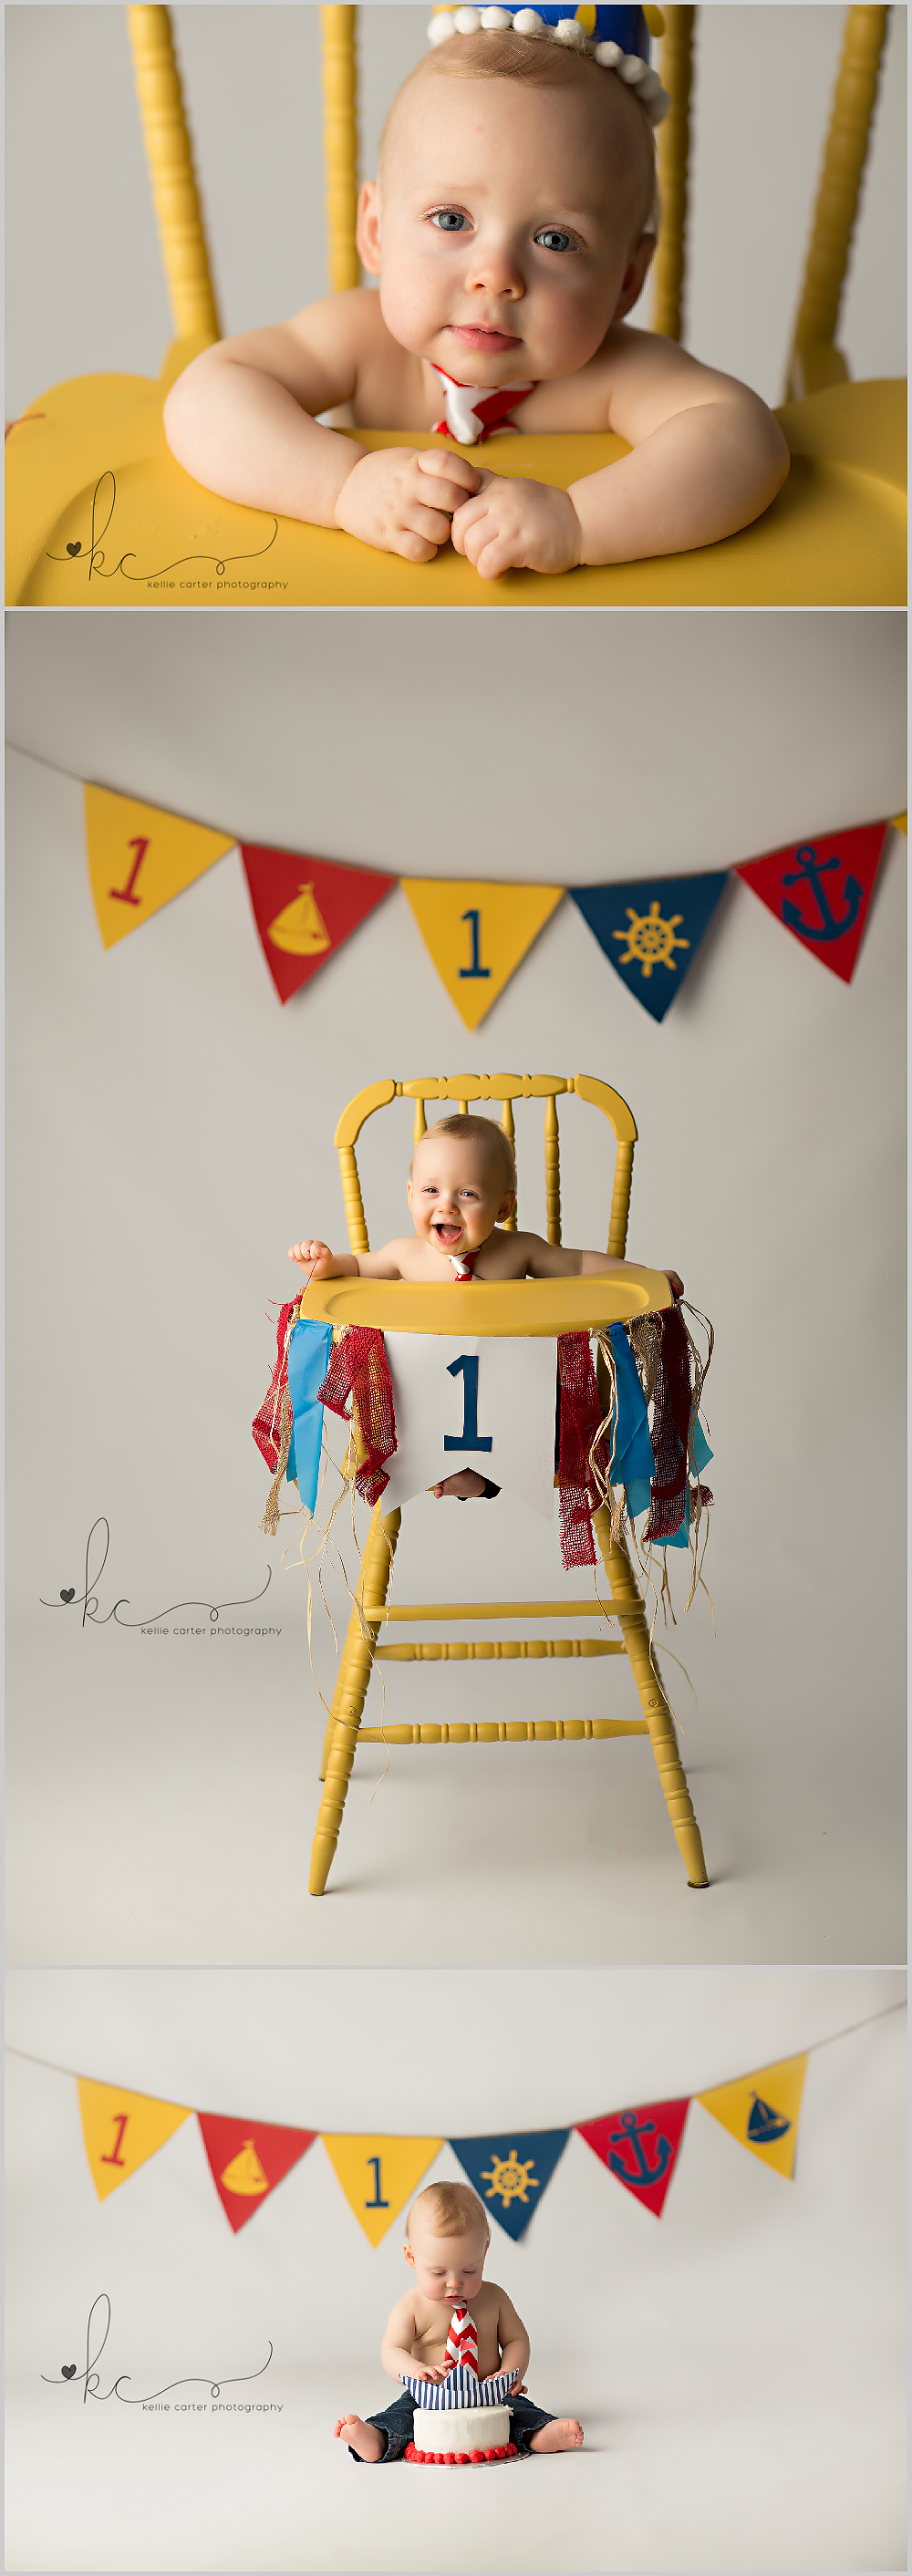 KellieCarter4 Happy 1st Birthday Brady {Russell Springs Childrens Photographer}